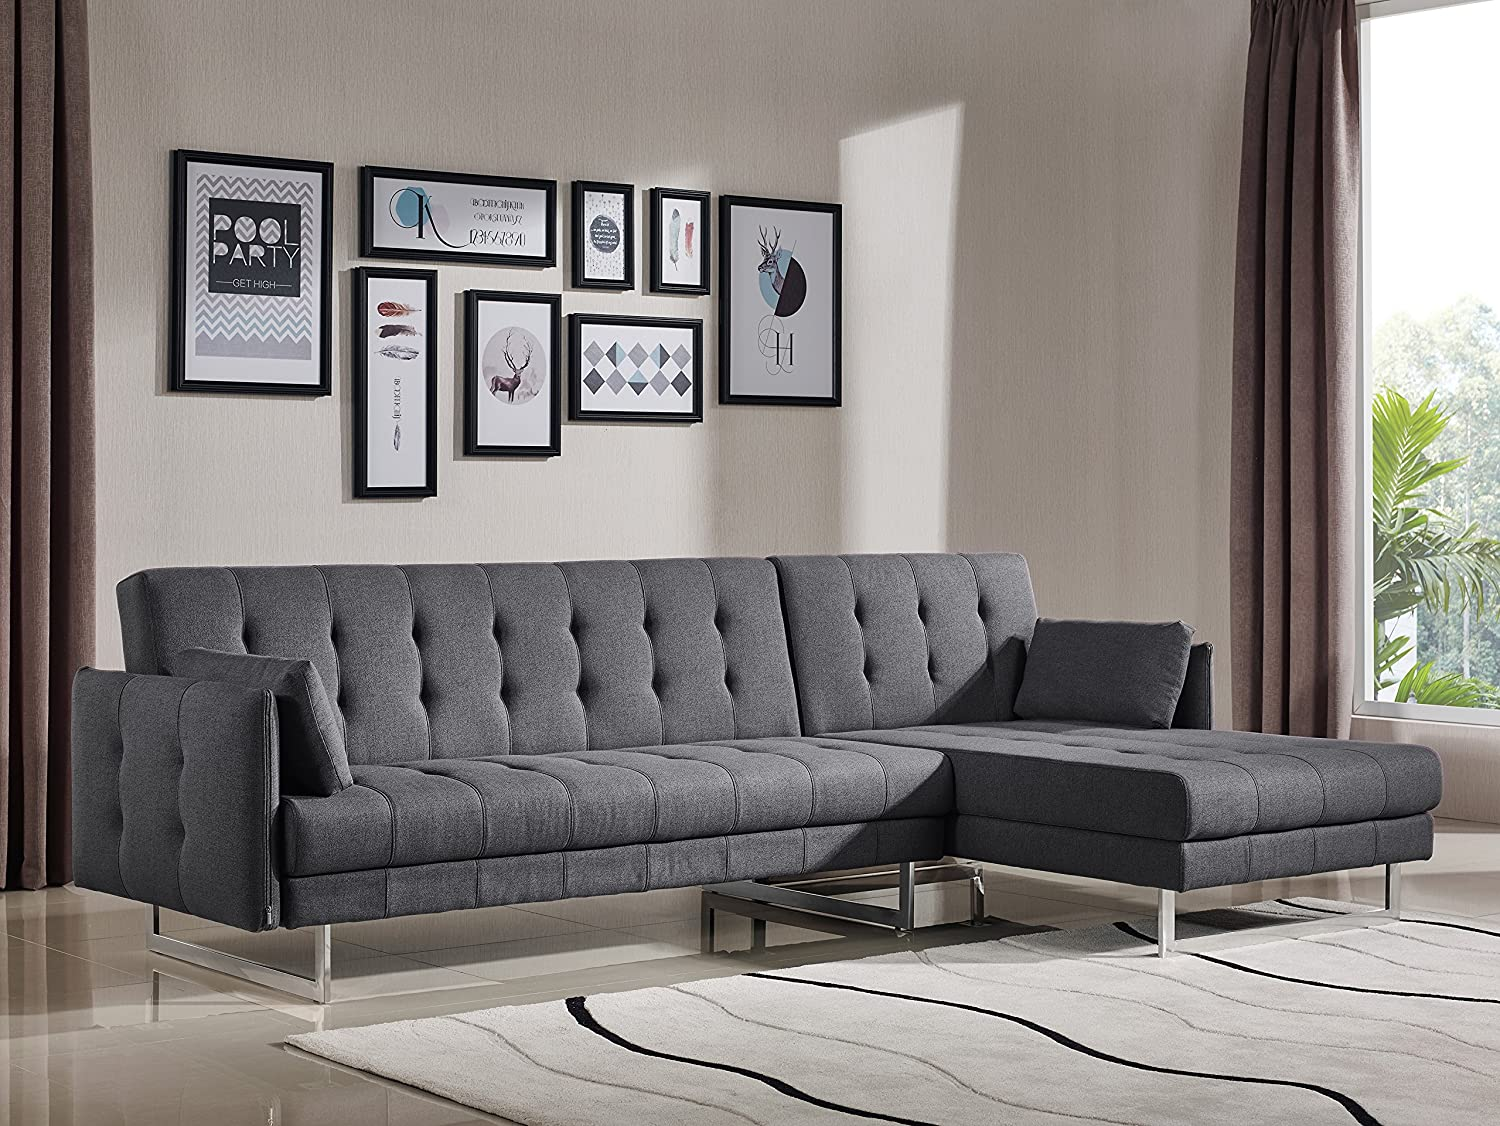 Limari Home The Evin Collection Modern Polyester Fabric Upholstered Wood Frame With Steel Legs Sectional Sofa Bed Couch for the Living Room, Gray